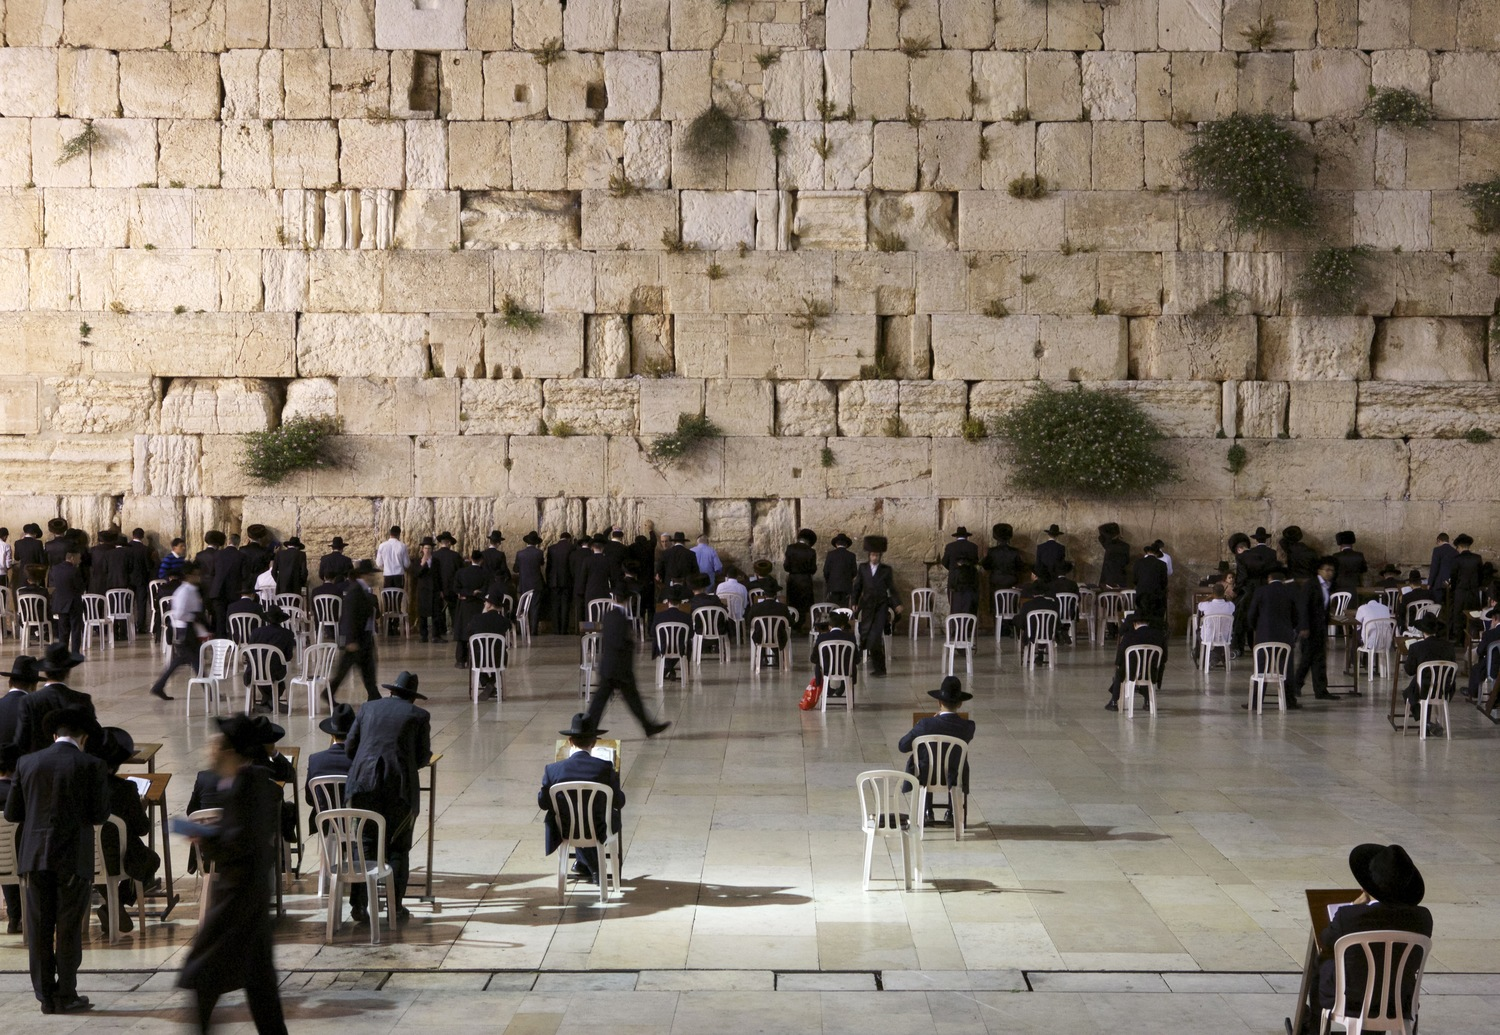 Jewish men pray, chant, and sway in front of the Western Wall, also called the Wailing Wall, located in the Old City of Jerusalem. This shrine, the last remnant of the Temple Mount destroyed by the Romans in 70 CE, is considered Judaism's holiest prayer site.